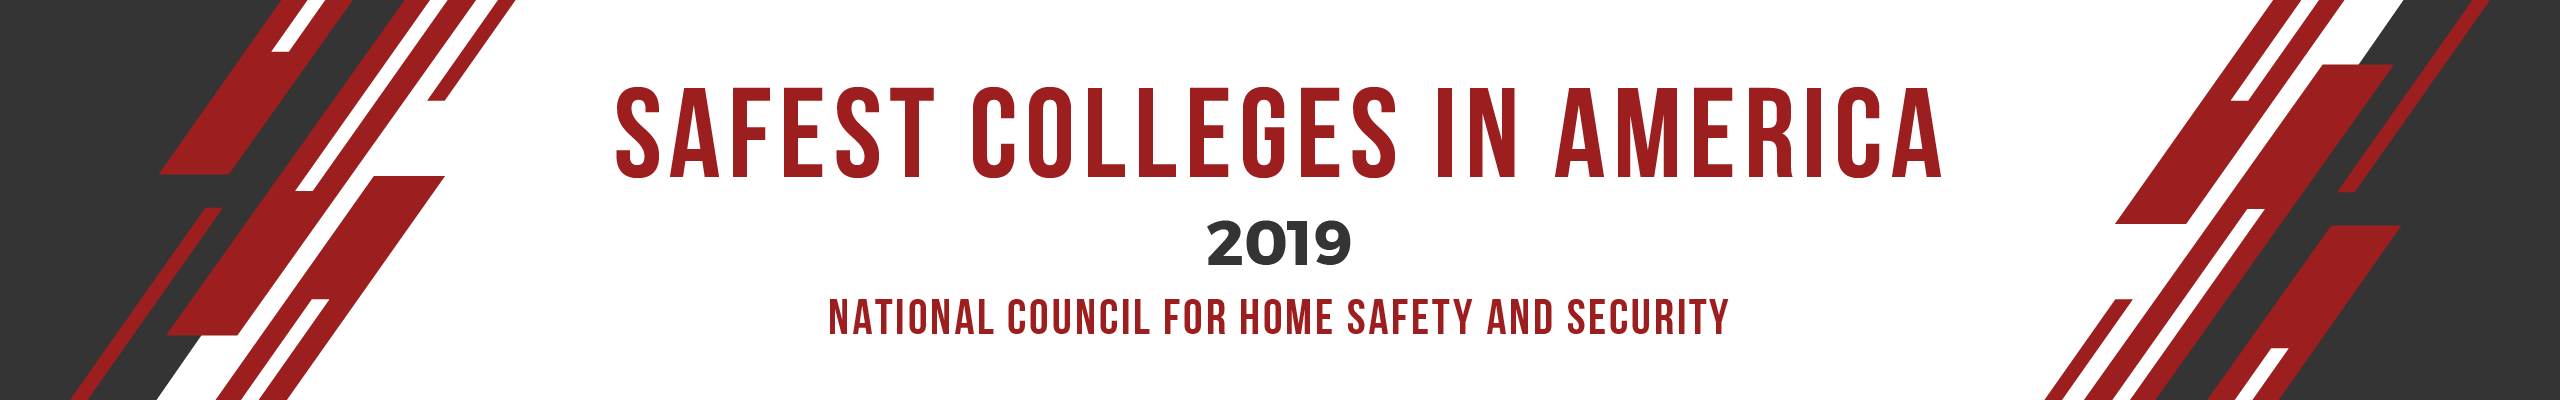 SafestColleges2019_banner